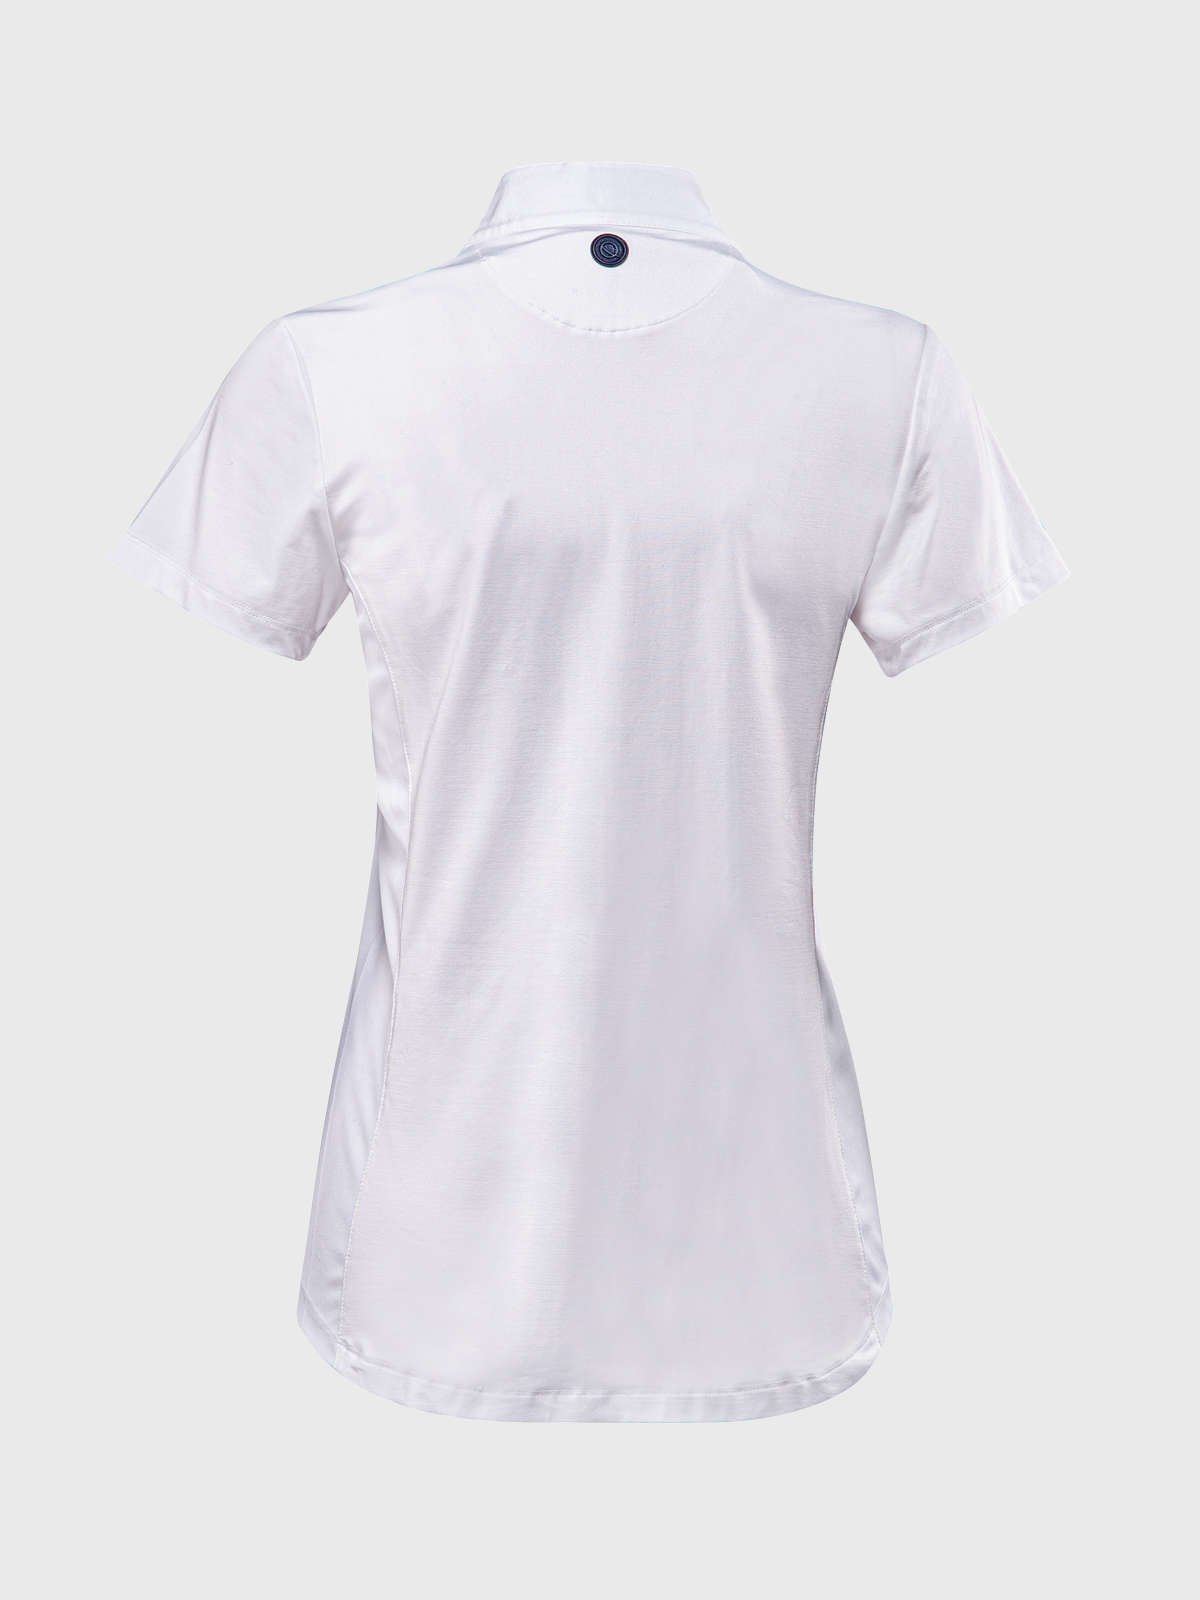 EQODE WOMEN'S SHORT SLEEVE SHOW SHIRT 2